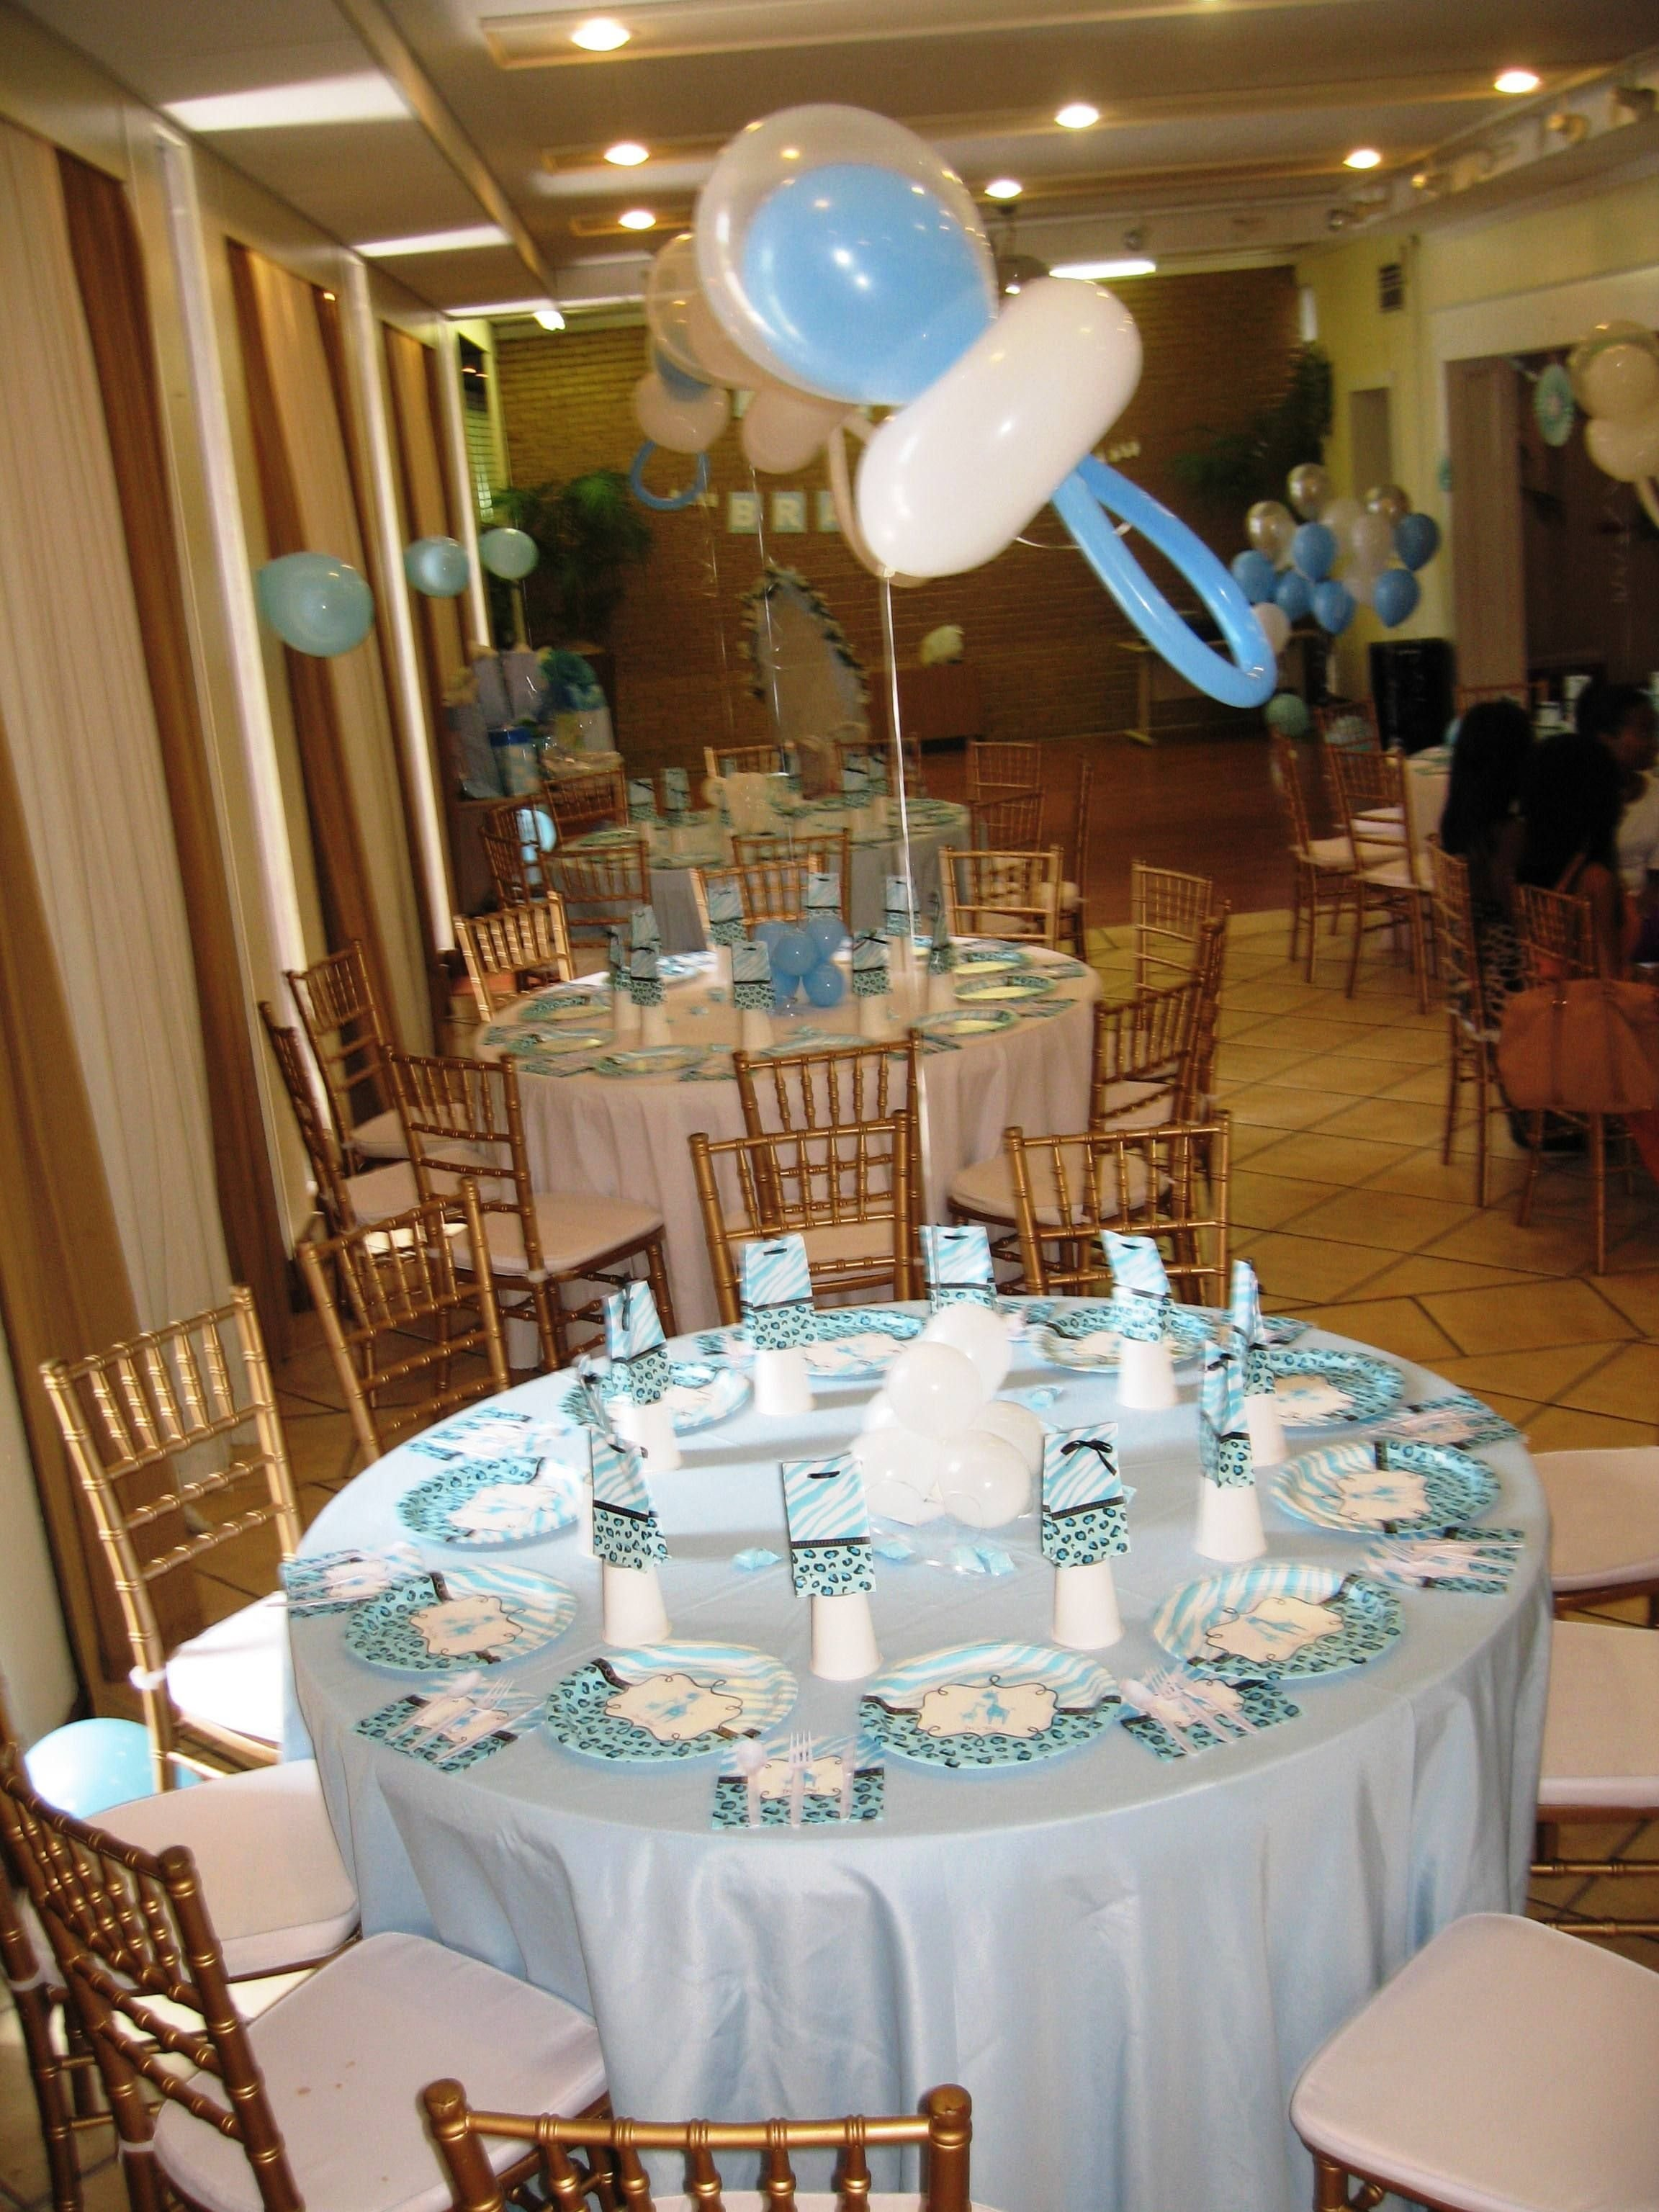 10 Attractive Decorating Ideas For Baby Shower baby shower table decor centerpieces table decor pinterest 3 2020